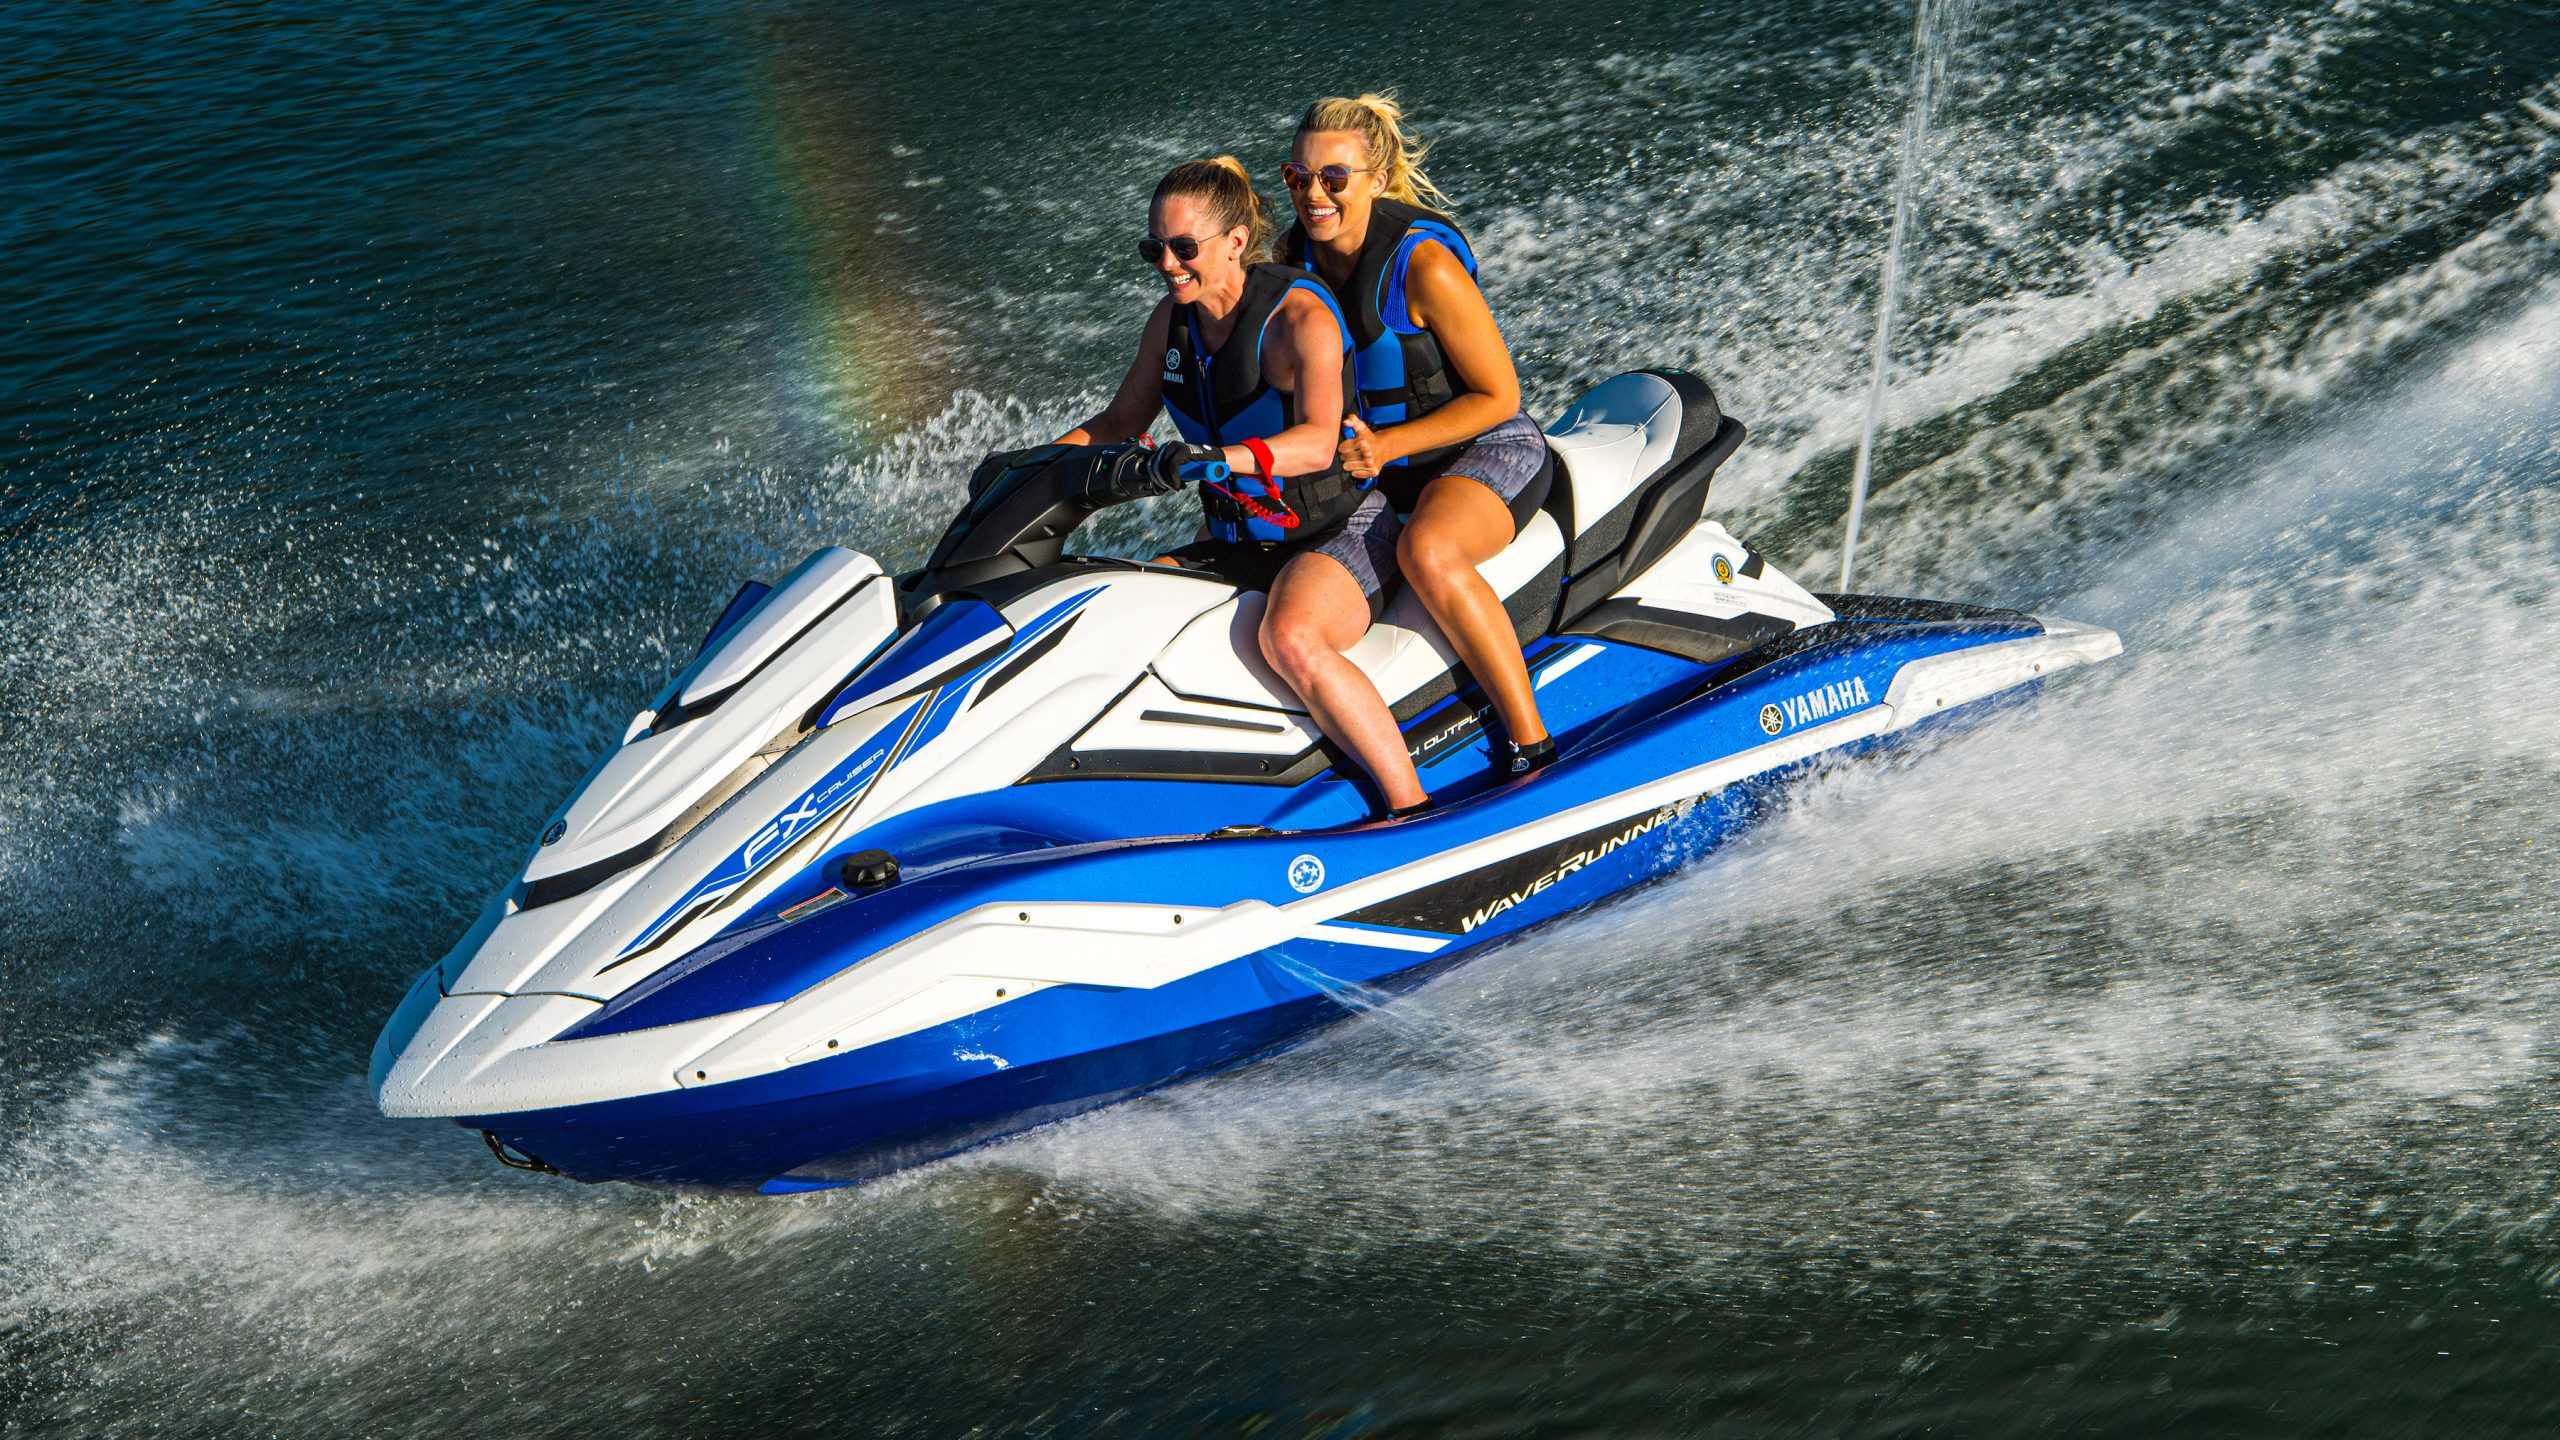 2021 Yamaha WaveRunner prices announced, stock shortages nationwide